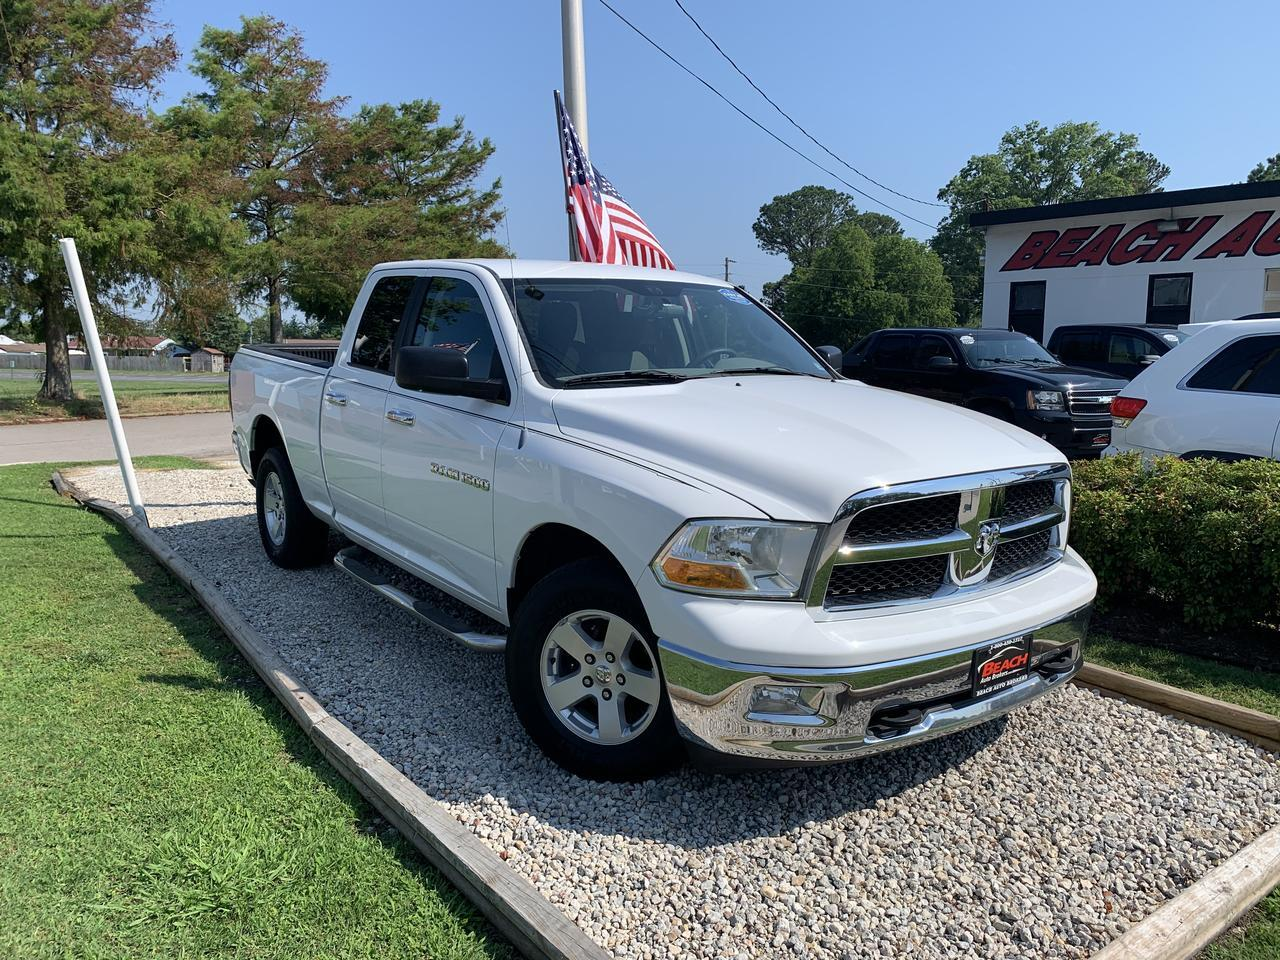 2012 DODGE RAM SLT QUAD CAB 4X4, WARRANTY, RUNNING BOARDS, SIRIUS RADIO, AUX PORT, CLEAN CARFAX! Norfolk VA